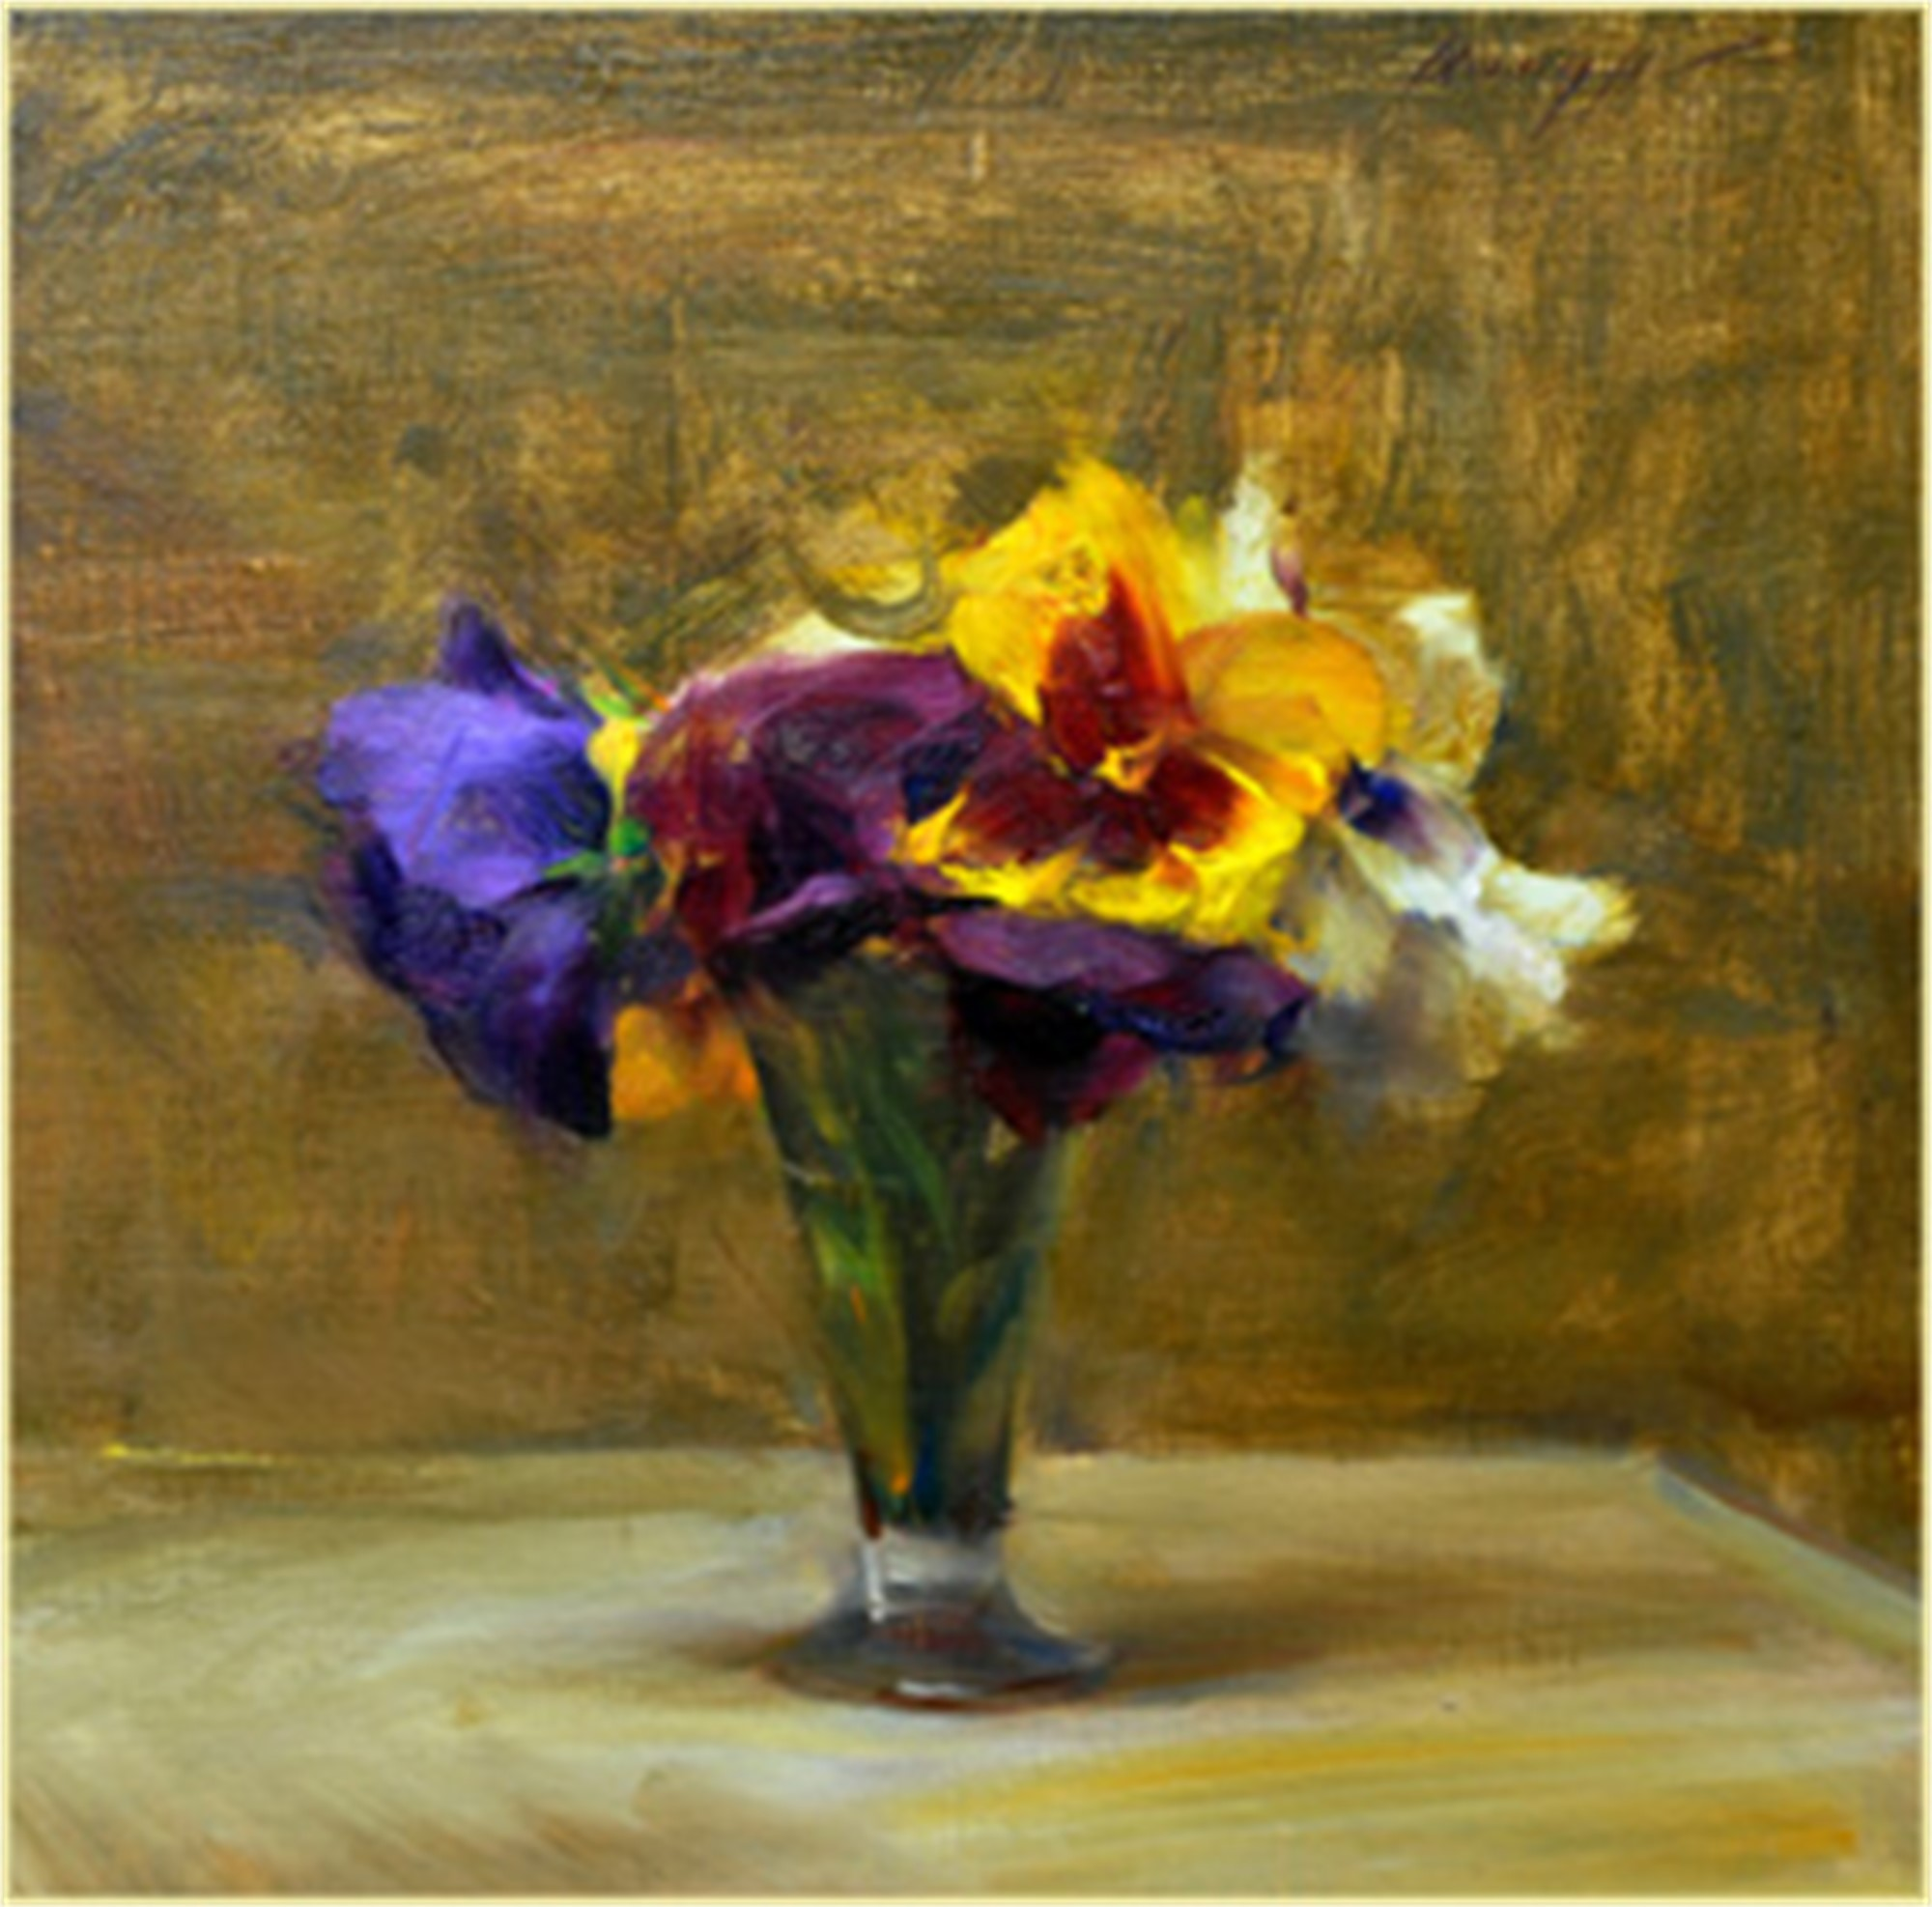 Pansies by Quang Ho